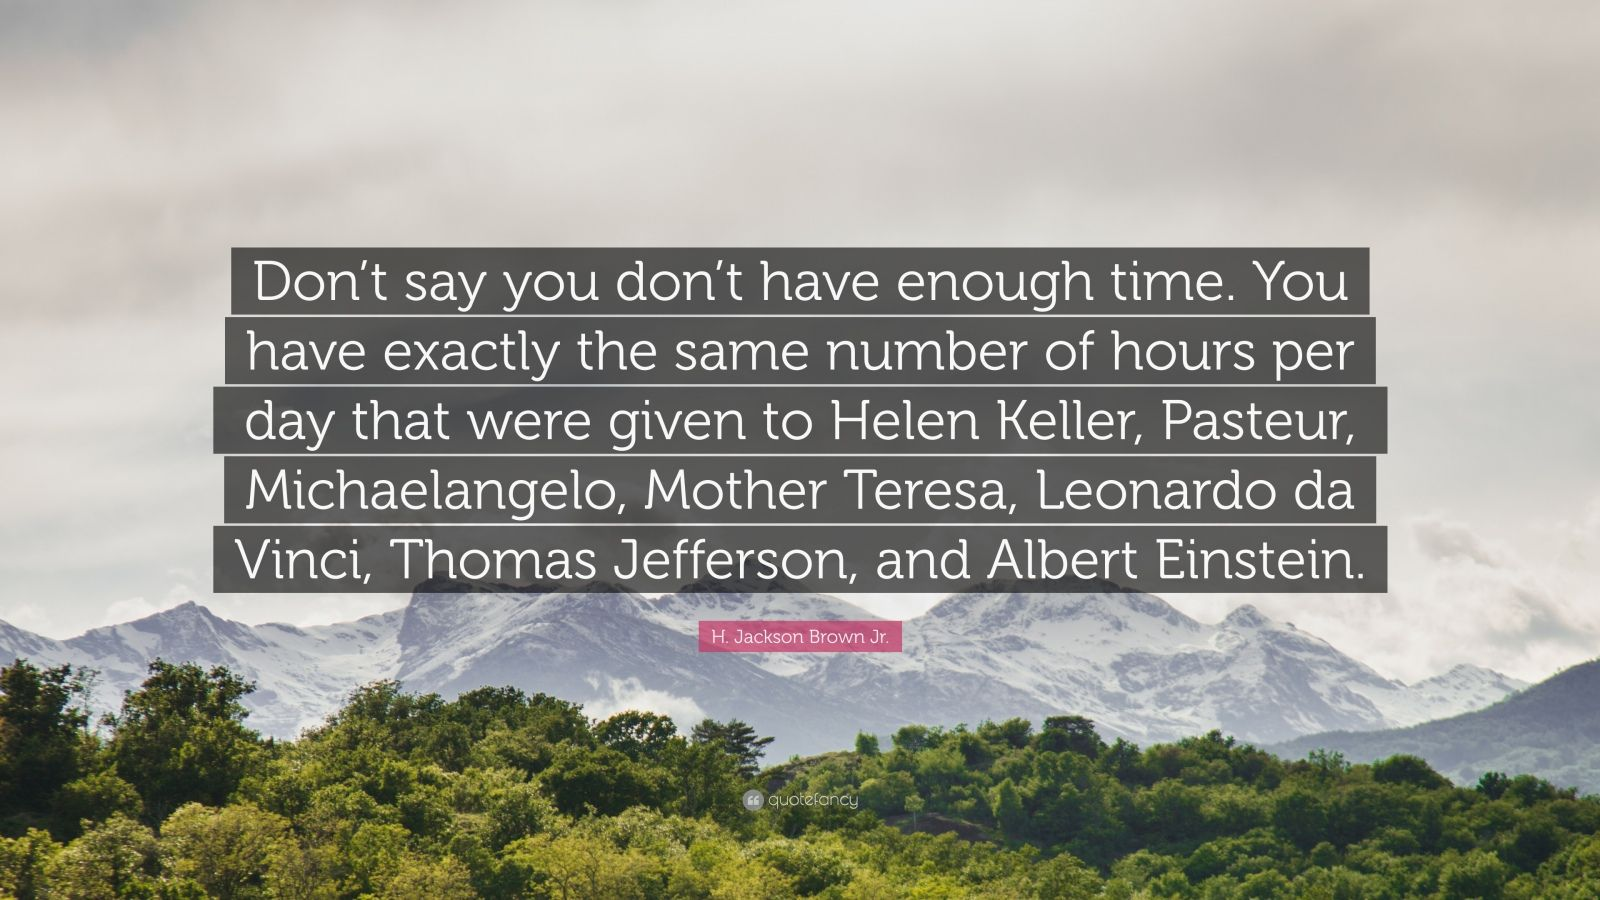 "H. Jackson Brown Jr. Quote: ""Don't say you don't have enough time. You have exactly the same number of hours per day that were given to Helen Keller, Pasteur, Michaelangelo, Mother Teresa, Leonardo da Vinci, Thomas Jefferson, and Albert Einstein."""